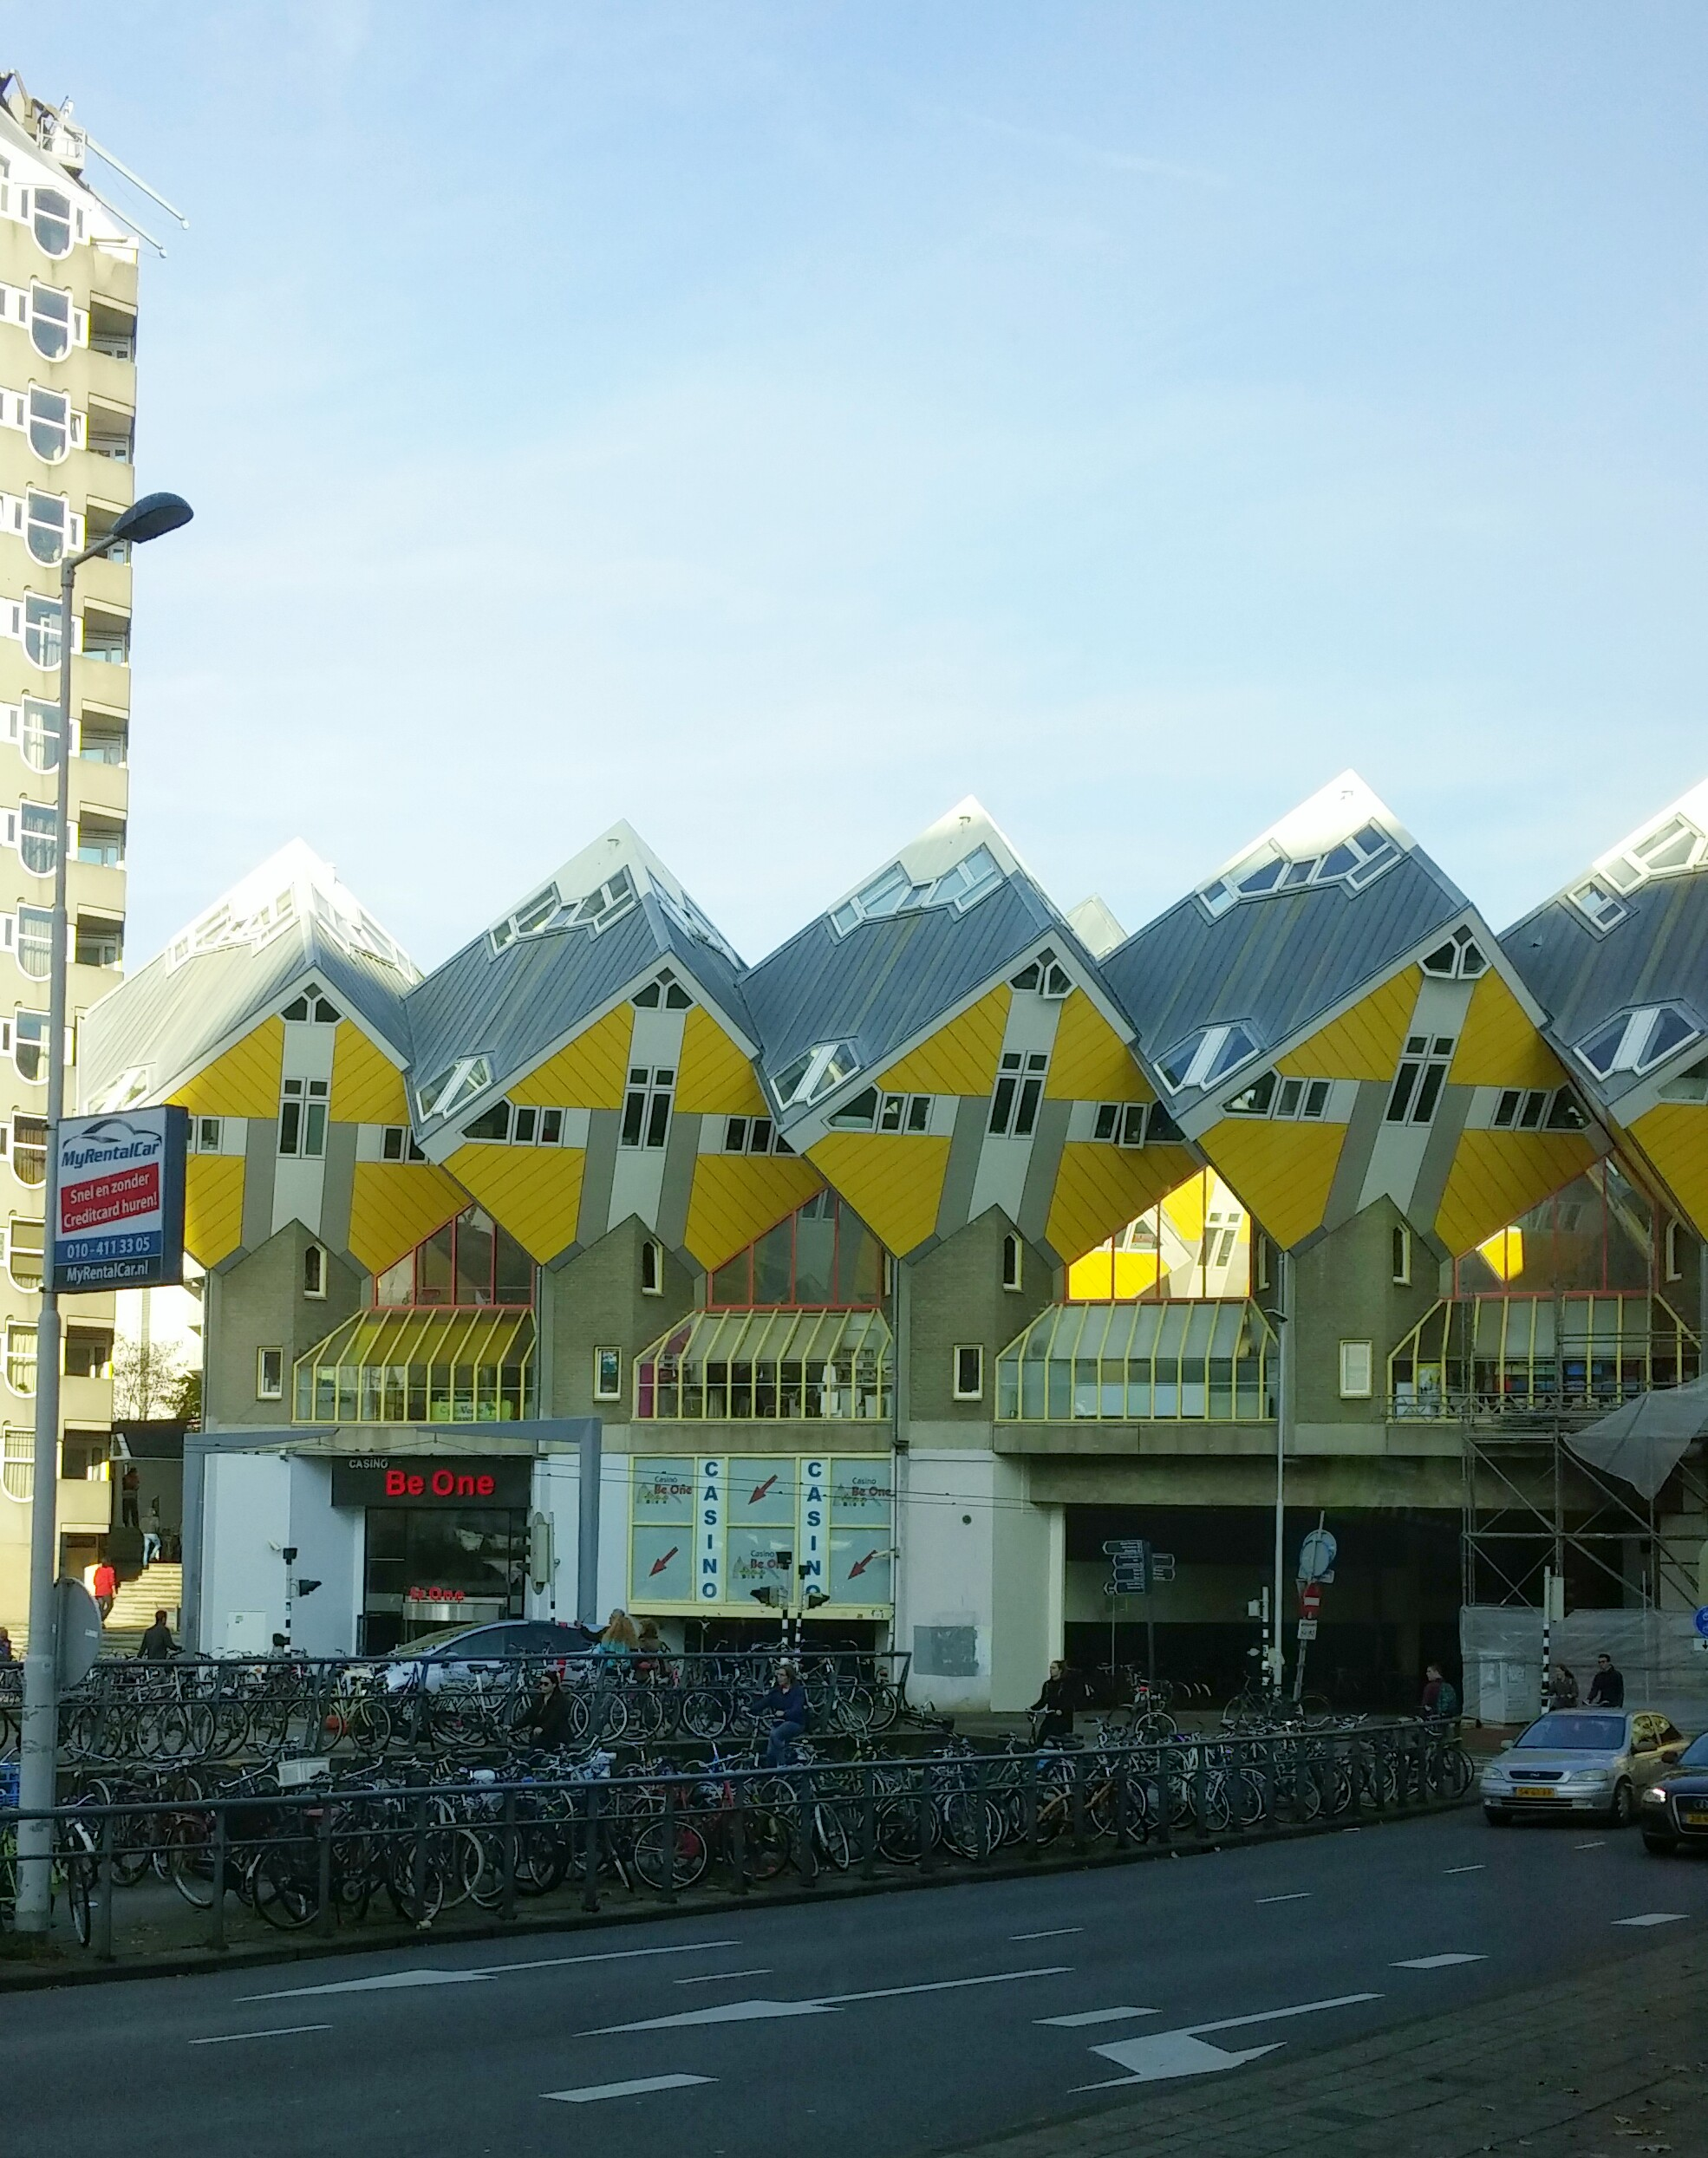 Cube apartments in Rotterdam